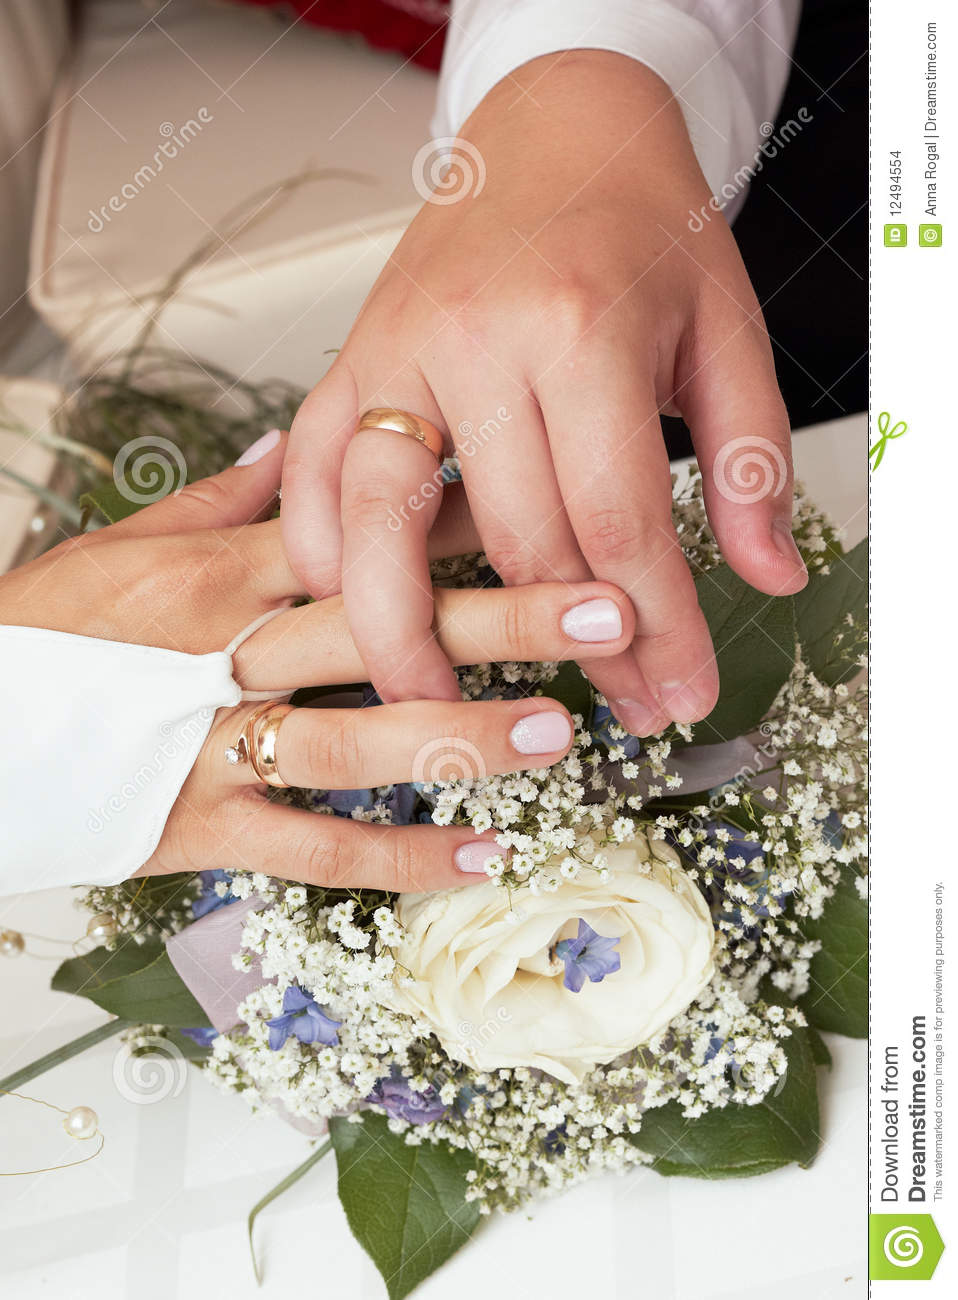 stock images newly married couple showing wedding rings image couples wedding bands Newly married couple showing wedding rings